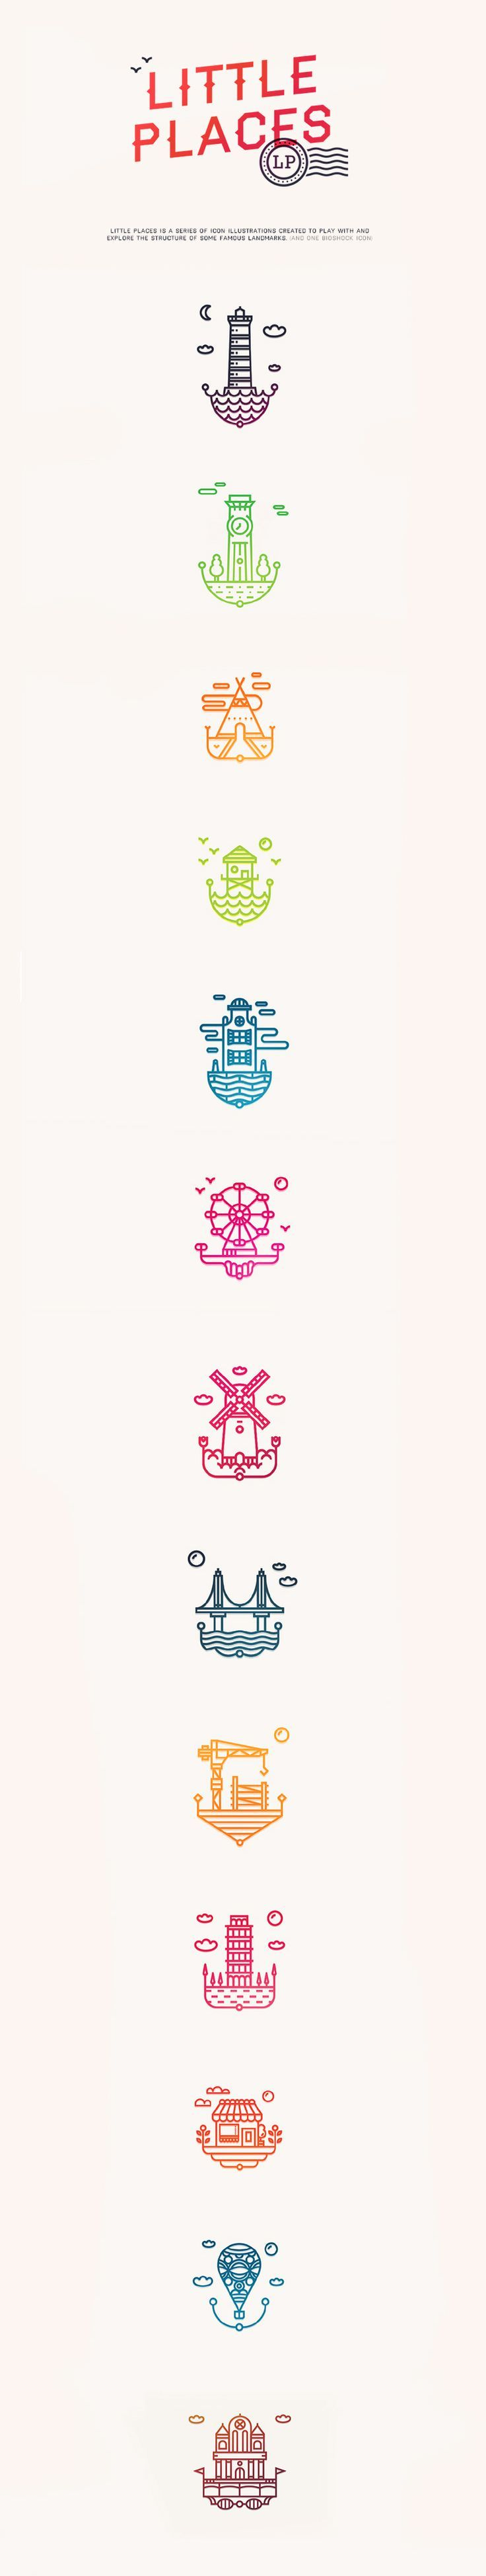 Little Places Icons|| Shane Wilson || https://www.behance.net/ShaneWilson